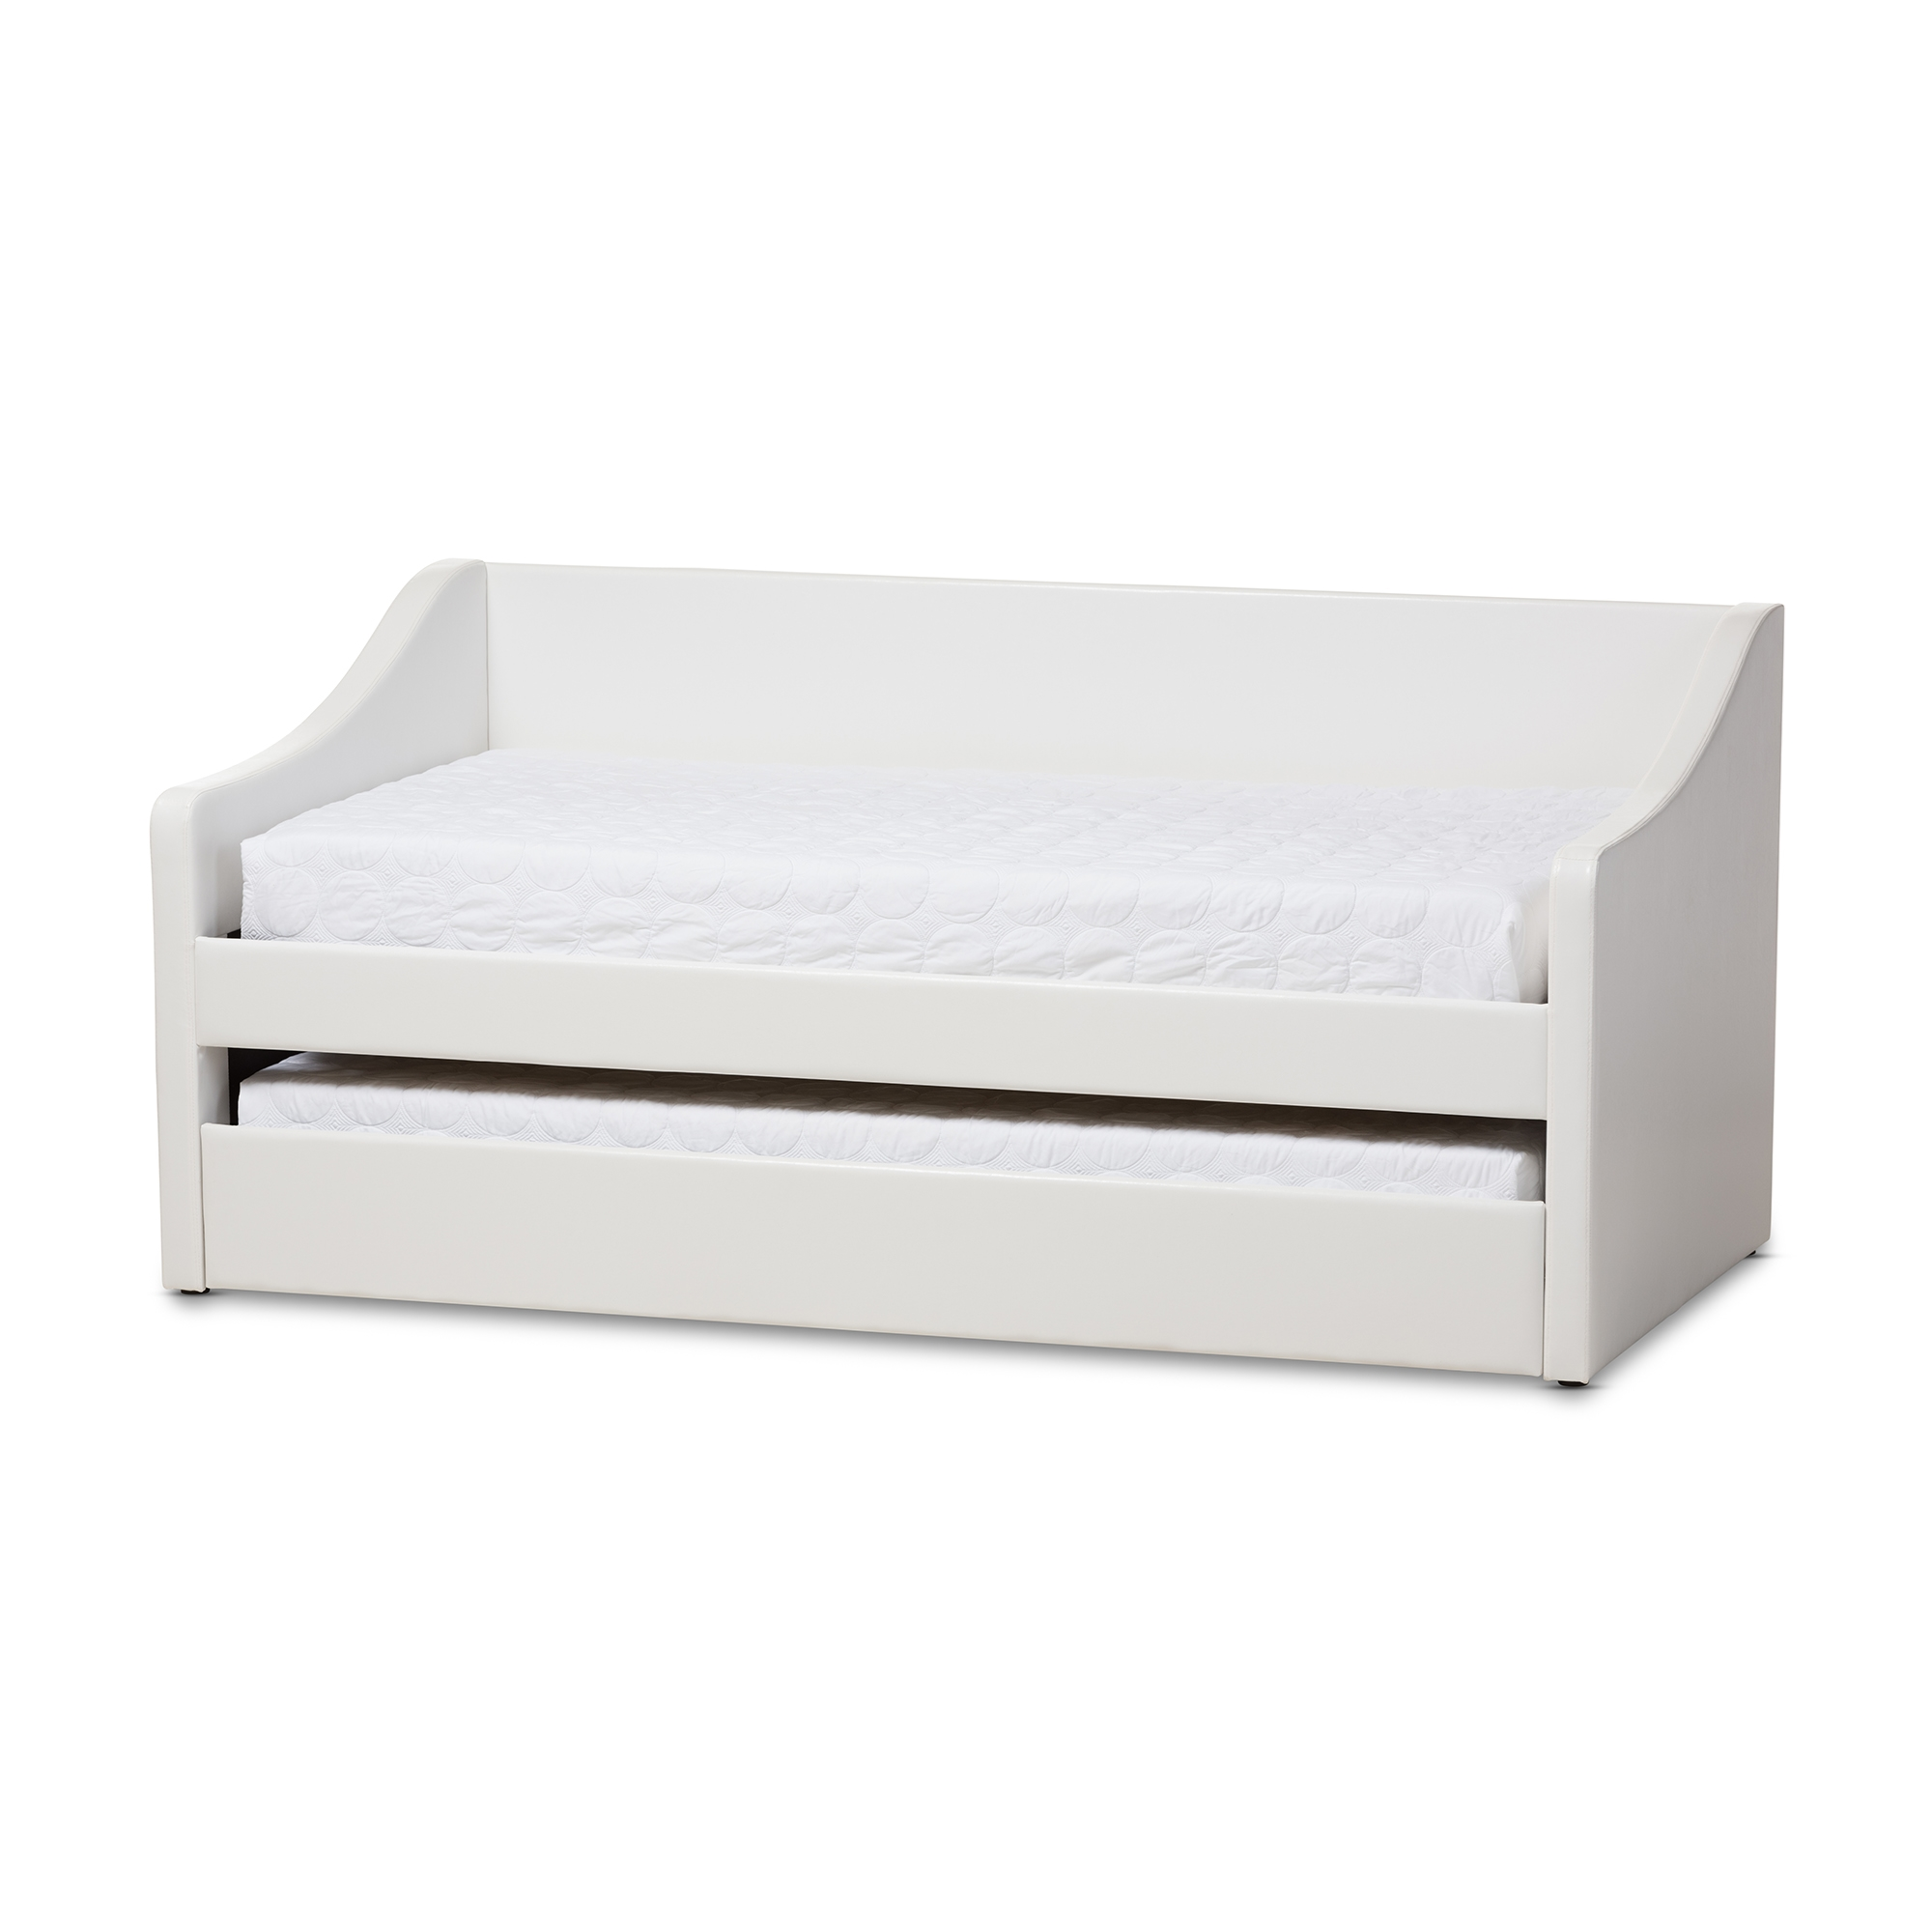 Baxton Studio Barnstorm Modern And Contemporary White Faux Leather  Upholstered Daybed With Guest Trundle Bed Affordable